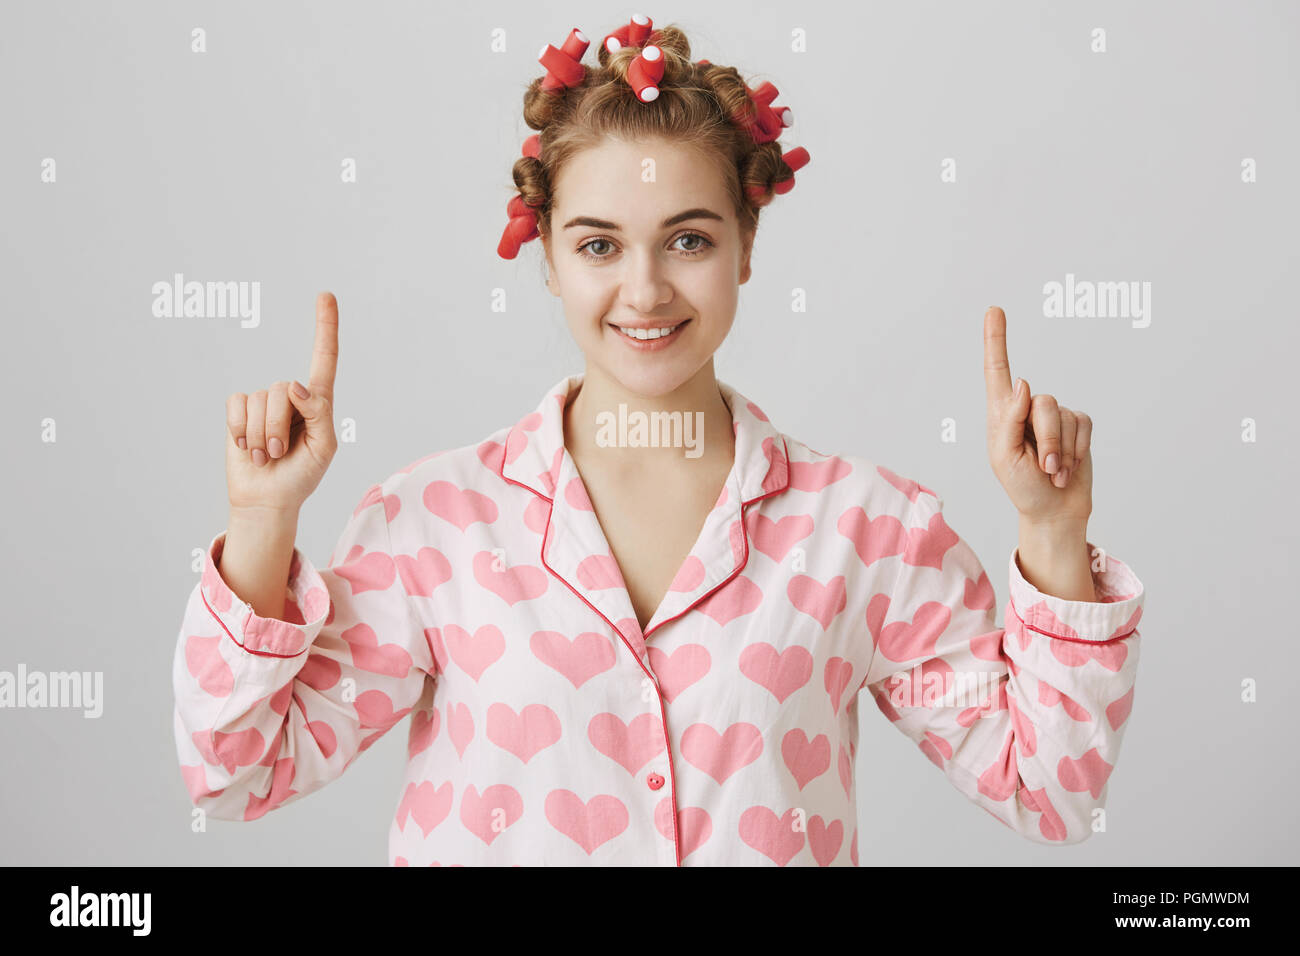 Cute and feminine european girl in hair-curlers and nightwear, pointing up with index fingers, smiling and glancing at camera over gray background. Woman glad she learnt how to apply curlers Stock Photo